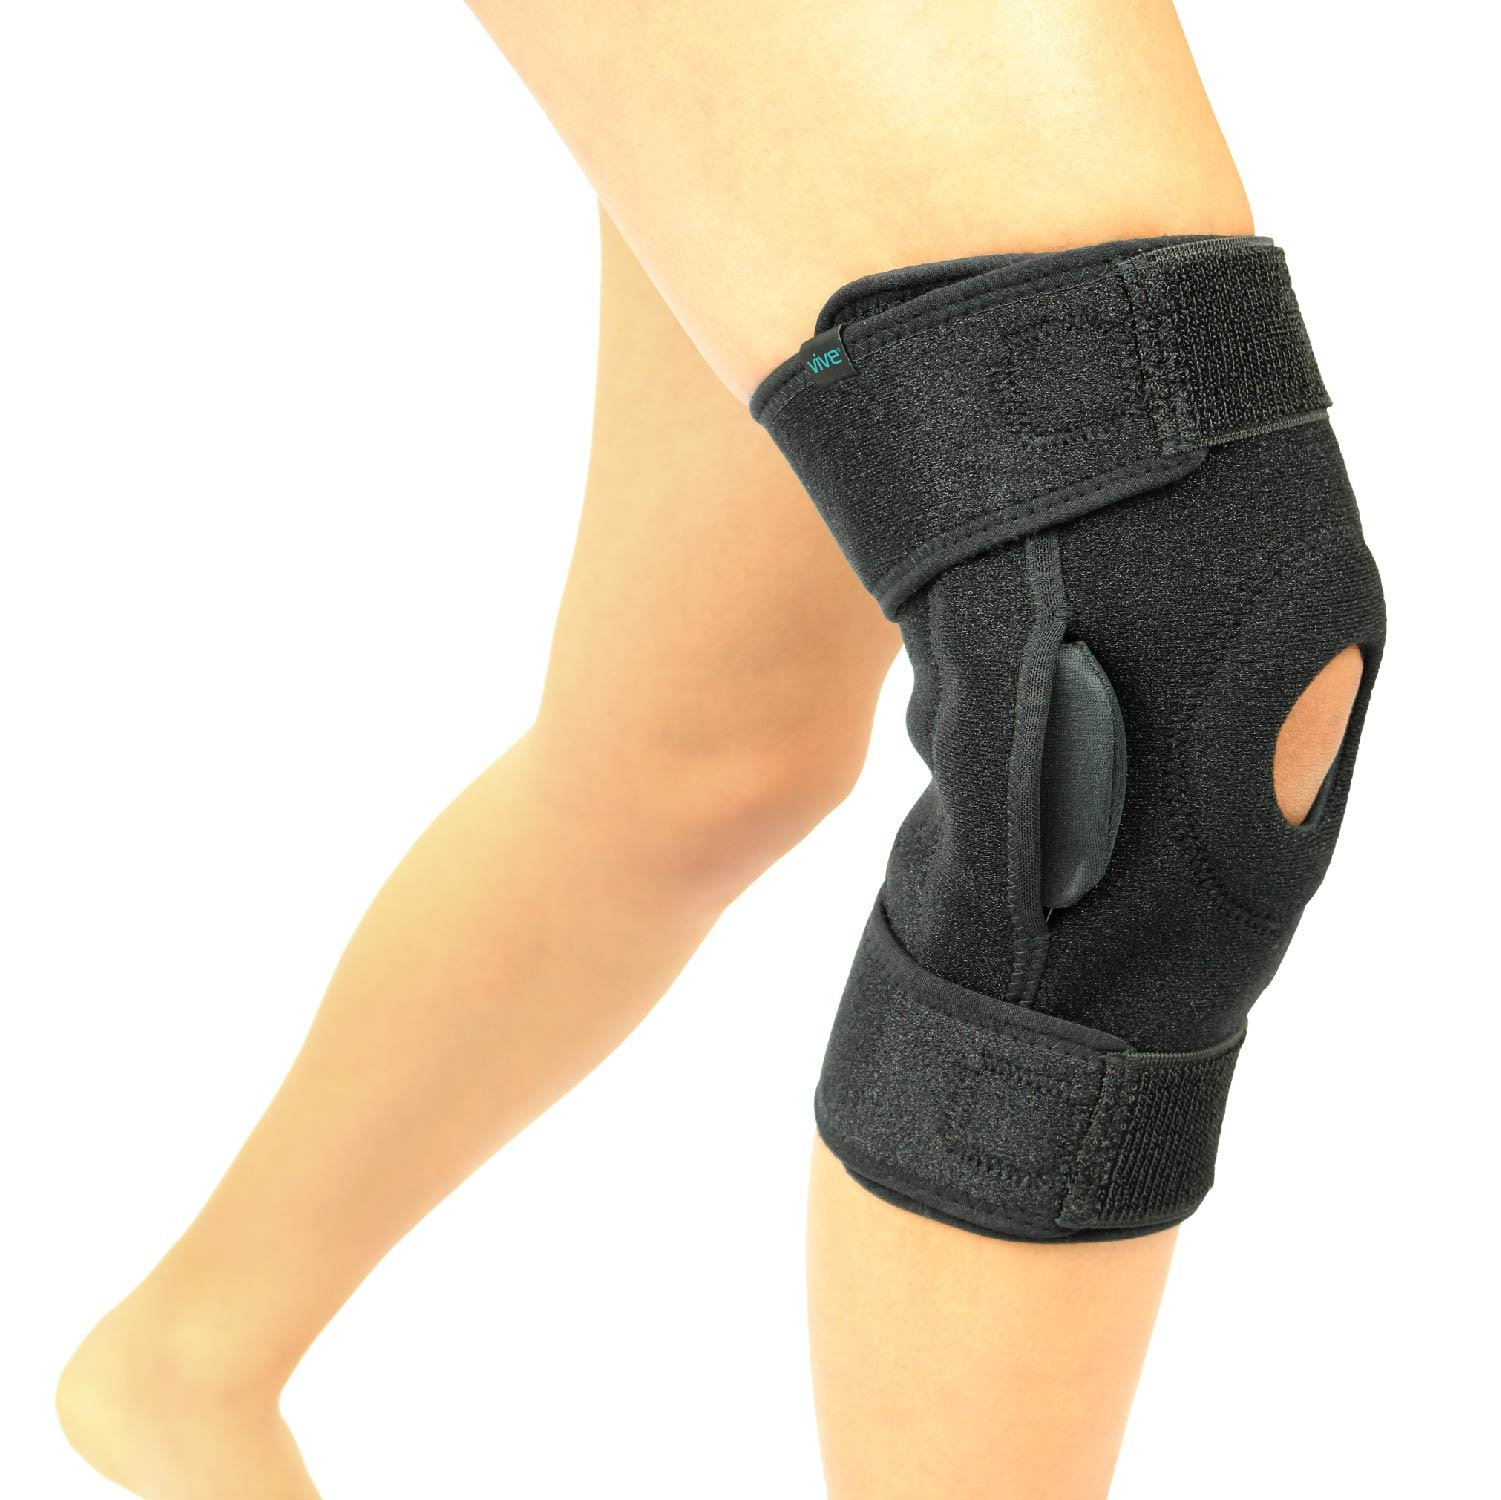 VIVE Hinged Knee Brace - Adjustable Open Patella Support for Swollen ACL, Tendon, Ligament and Meniscus Injuries - Athletic Compression for Running and Arthritic Joint Problems